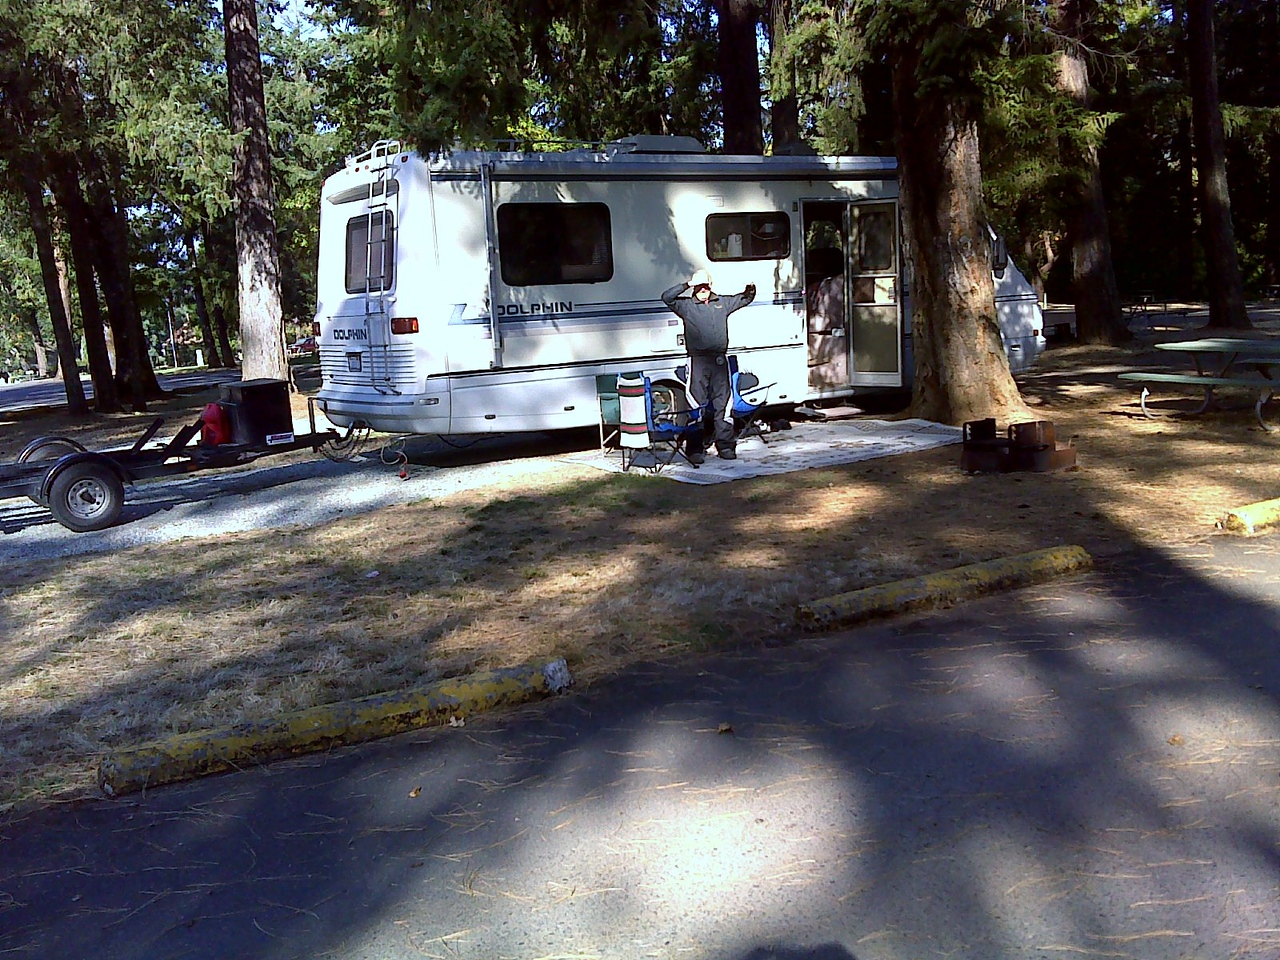 Our camp site on the way down to Foots Creek,OR. Stanton County Park very nice and right off I-5